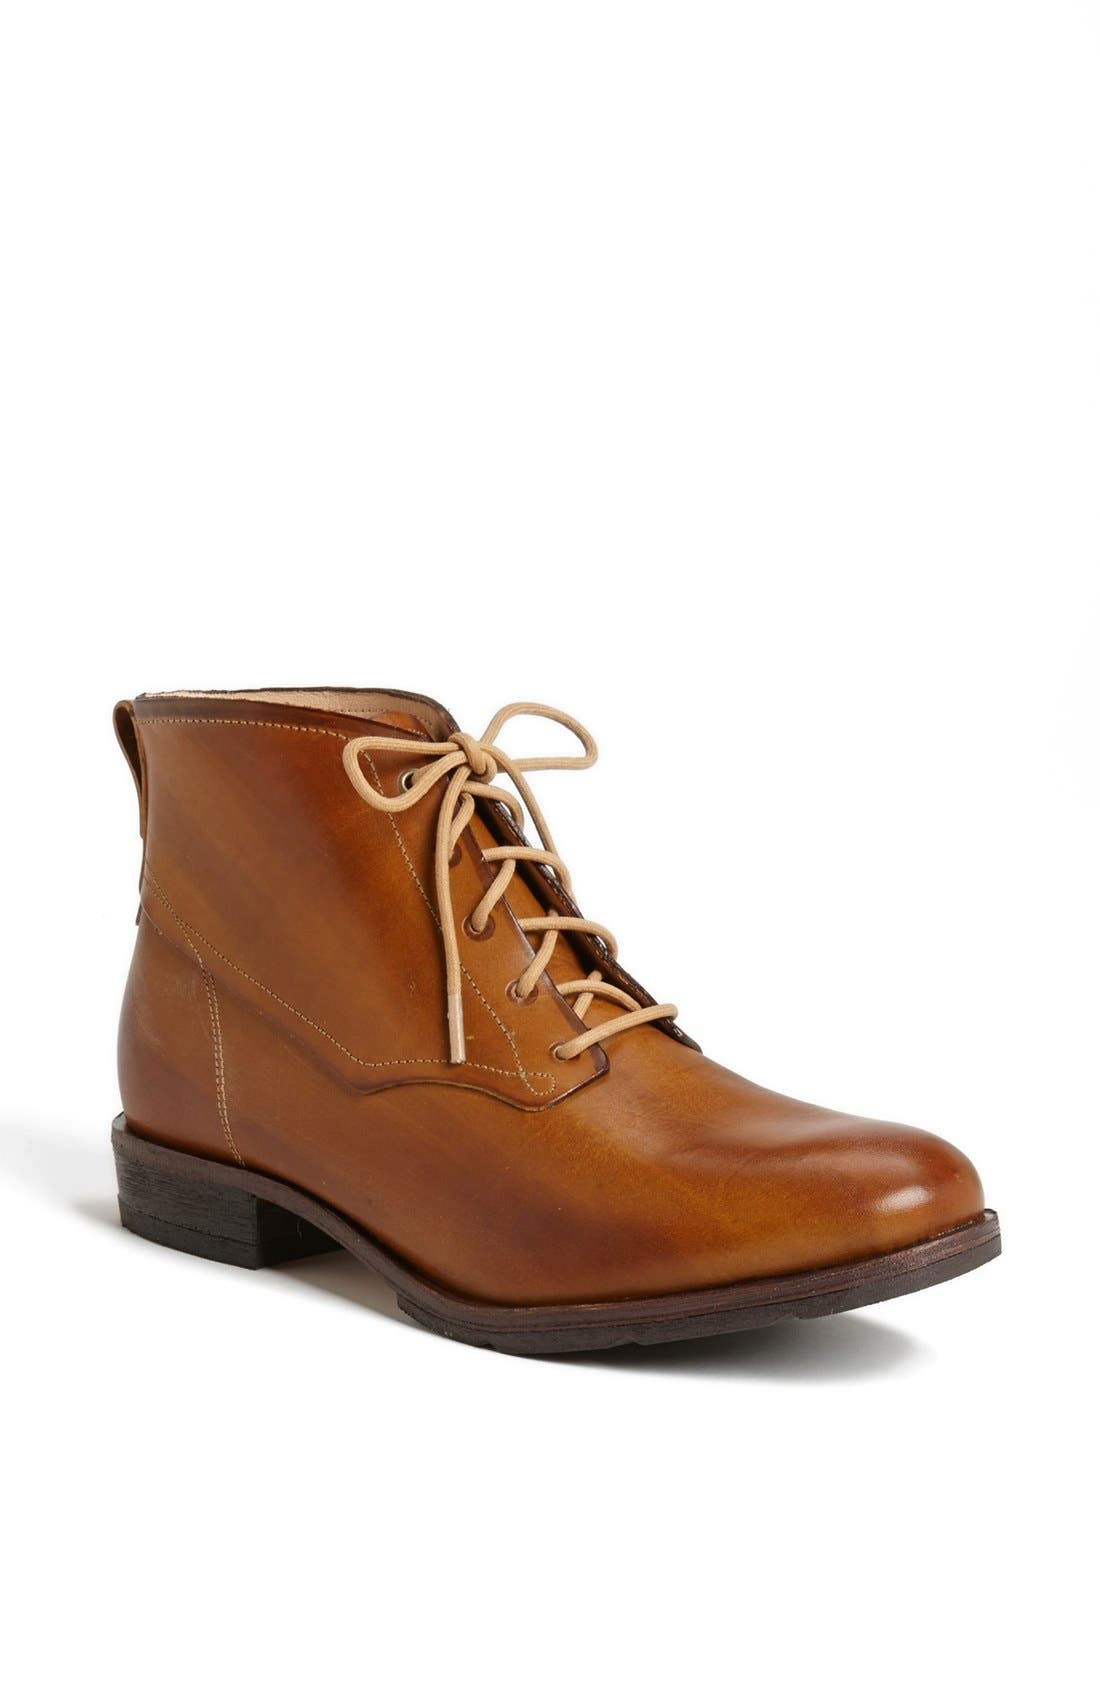 Alternate Image 1 Selected - Timberland 'Lucille' Chukka Boot